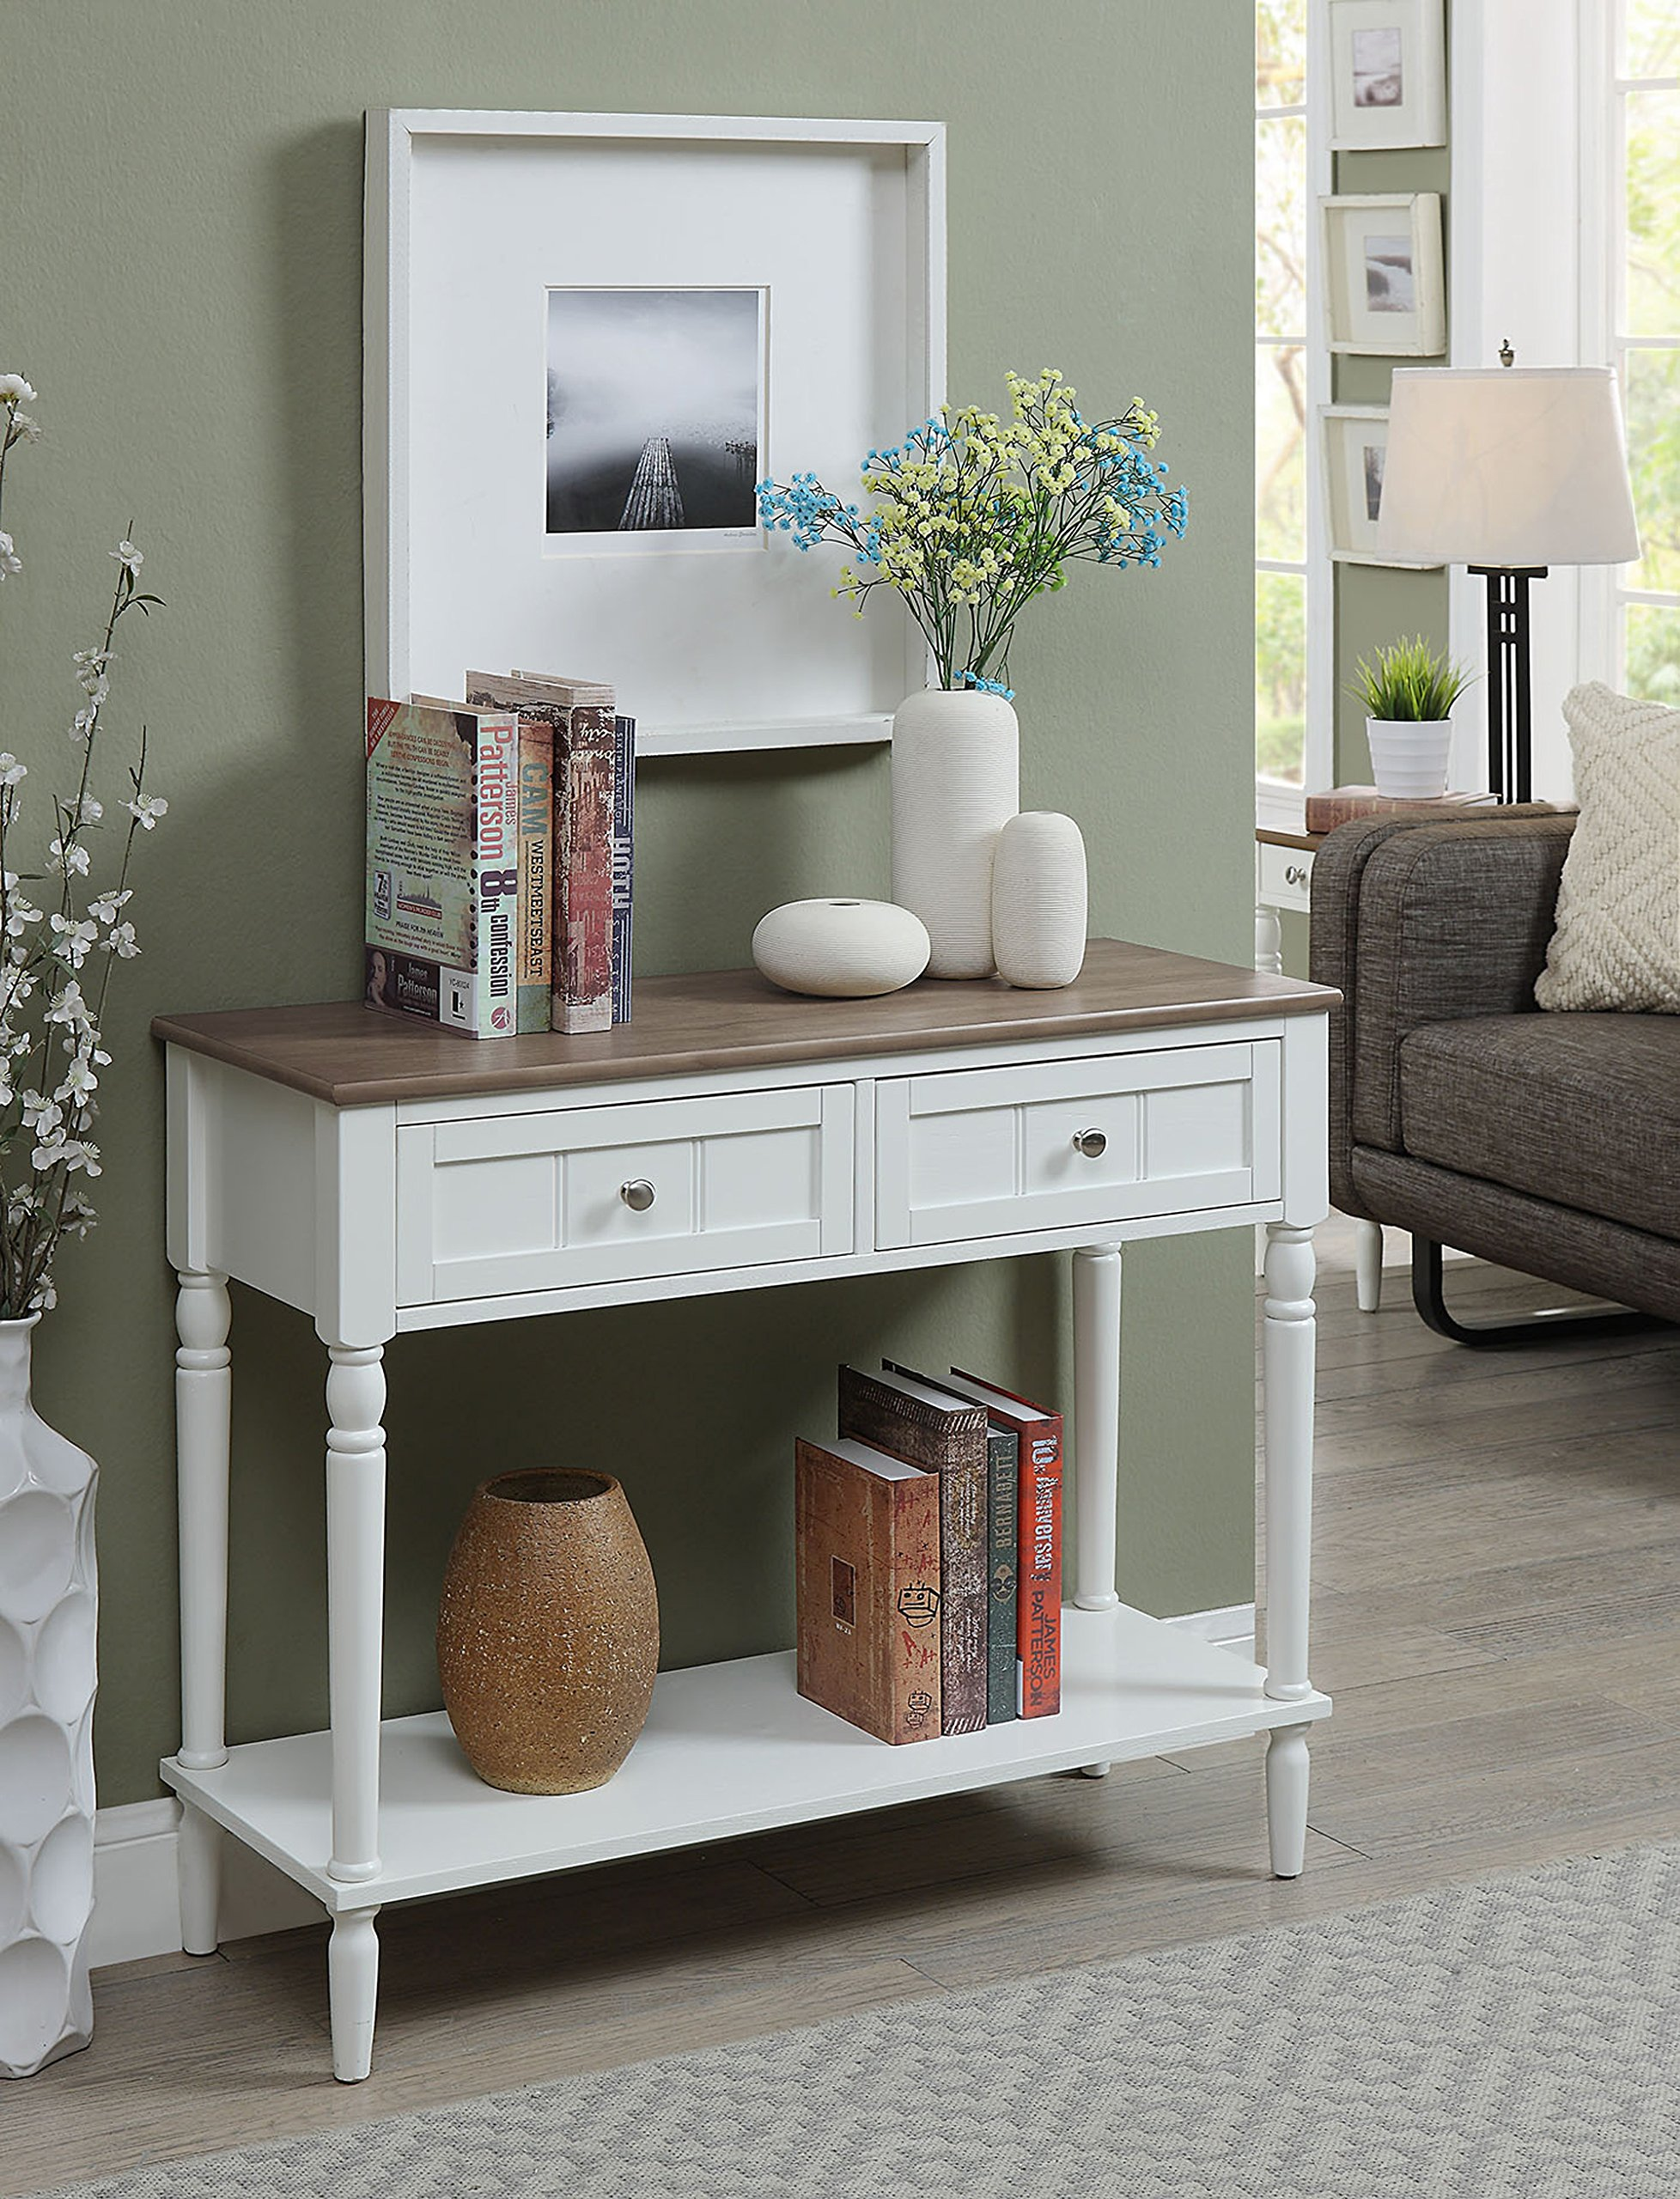 Convenience Concepts 6050419DFTW French Country Hall Table, Driftwood/White by Convenience Concepts